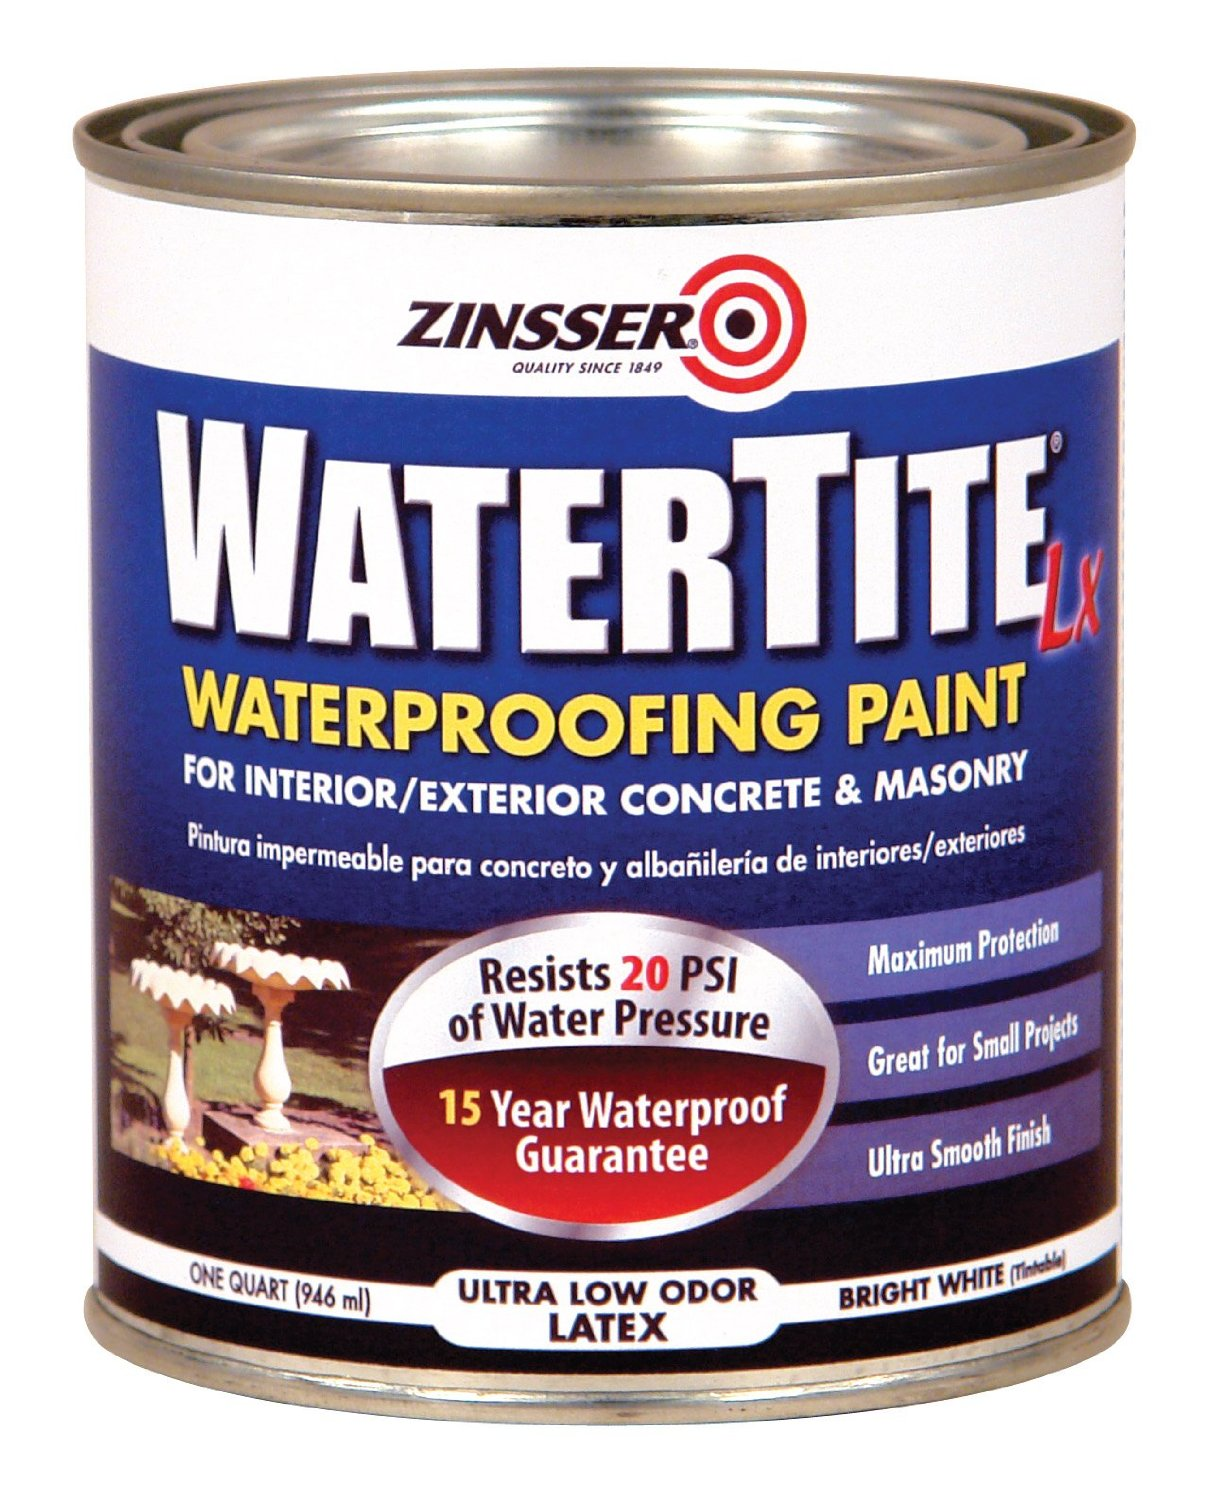 Zinsser Watertite Waterproofing Paint Water Base Quart - Paint to cover mold in bathroom